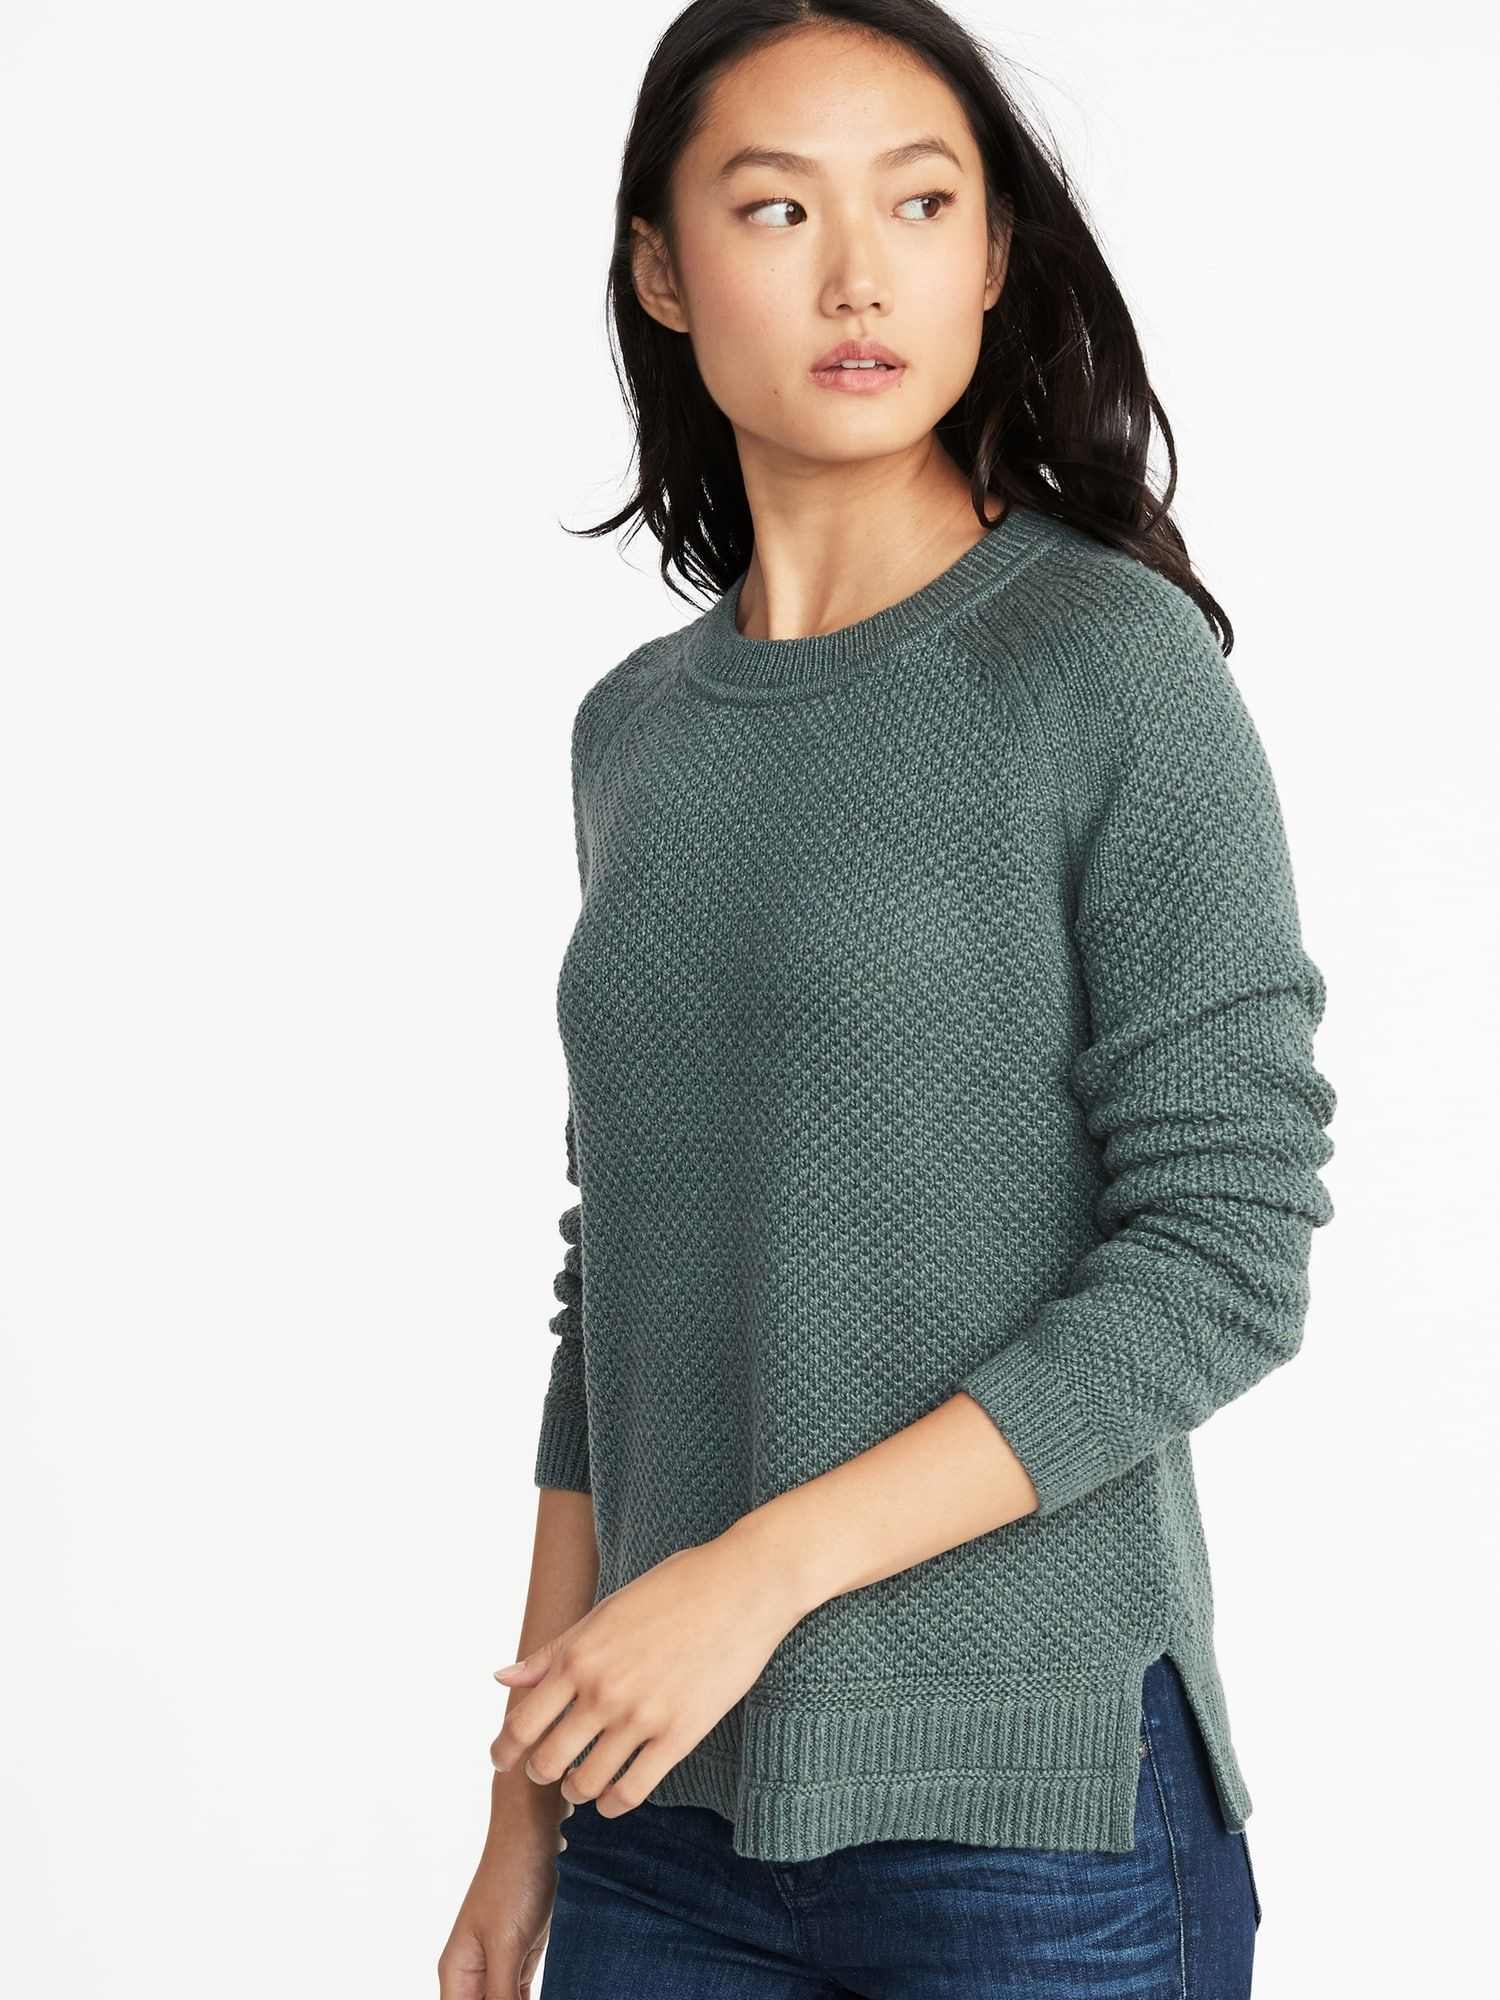 9ab19394cbb4a Small Tall in Sea Green - Textured Crew-Neck Sweater for Women